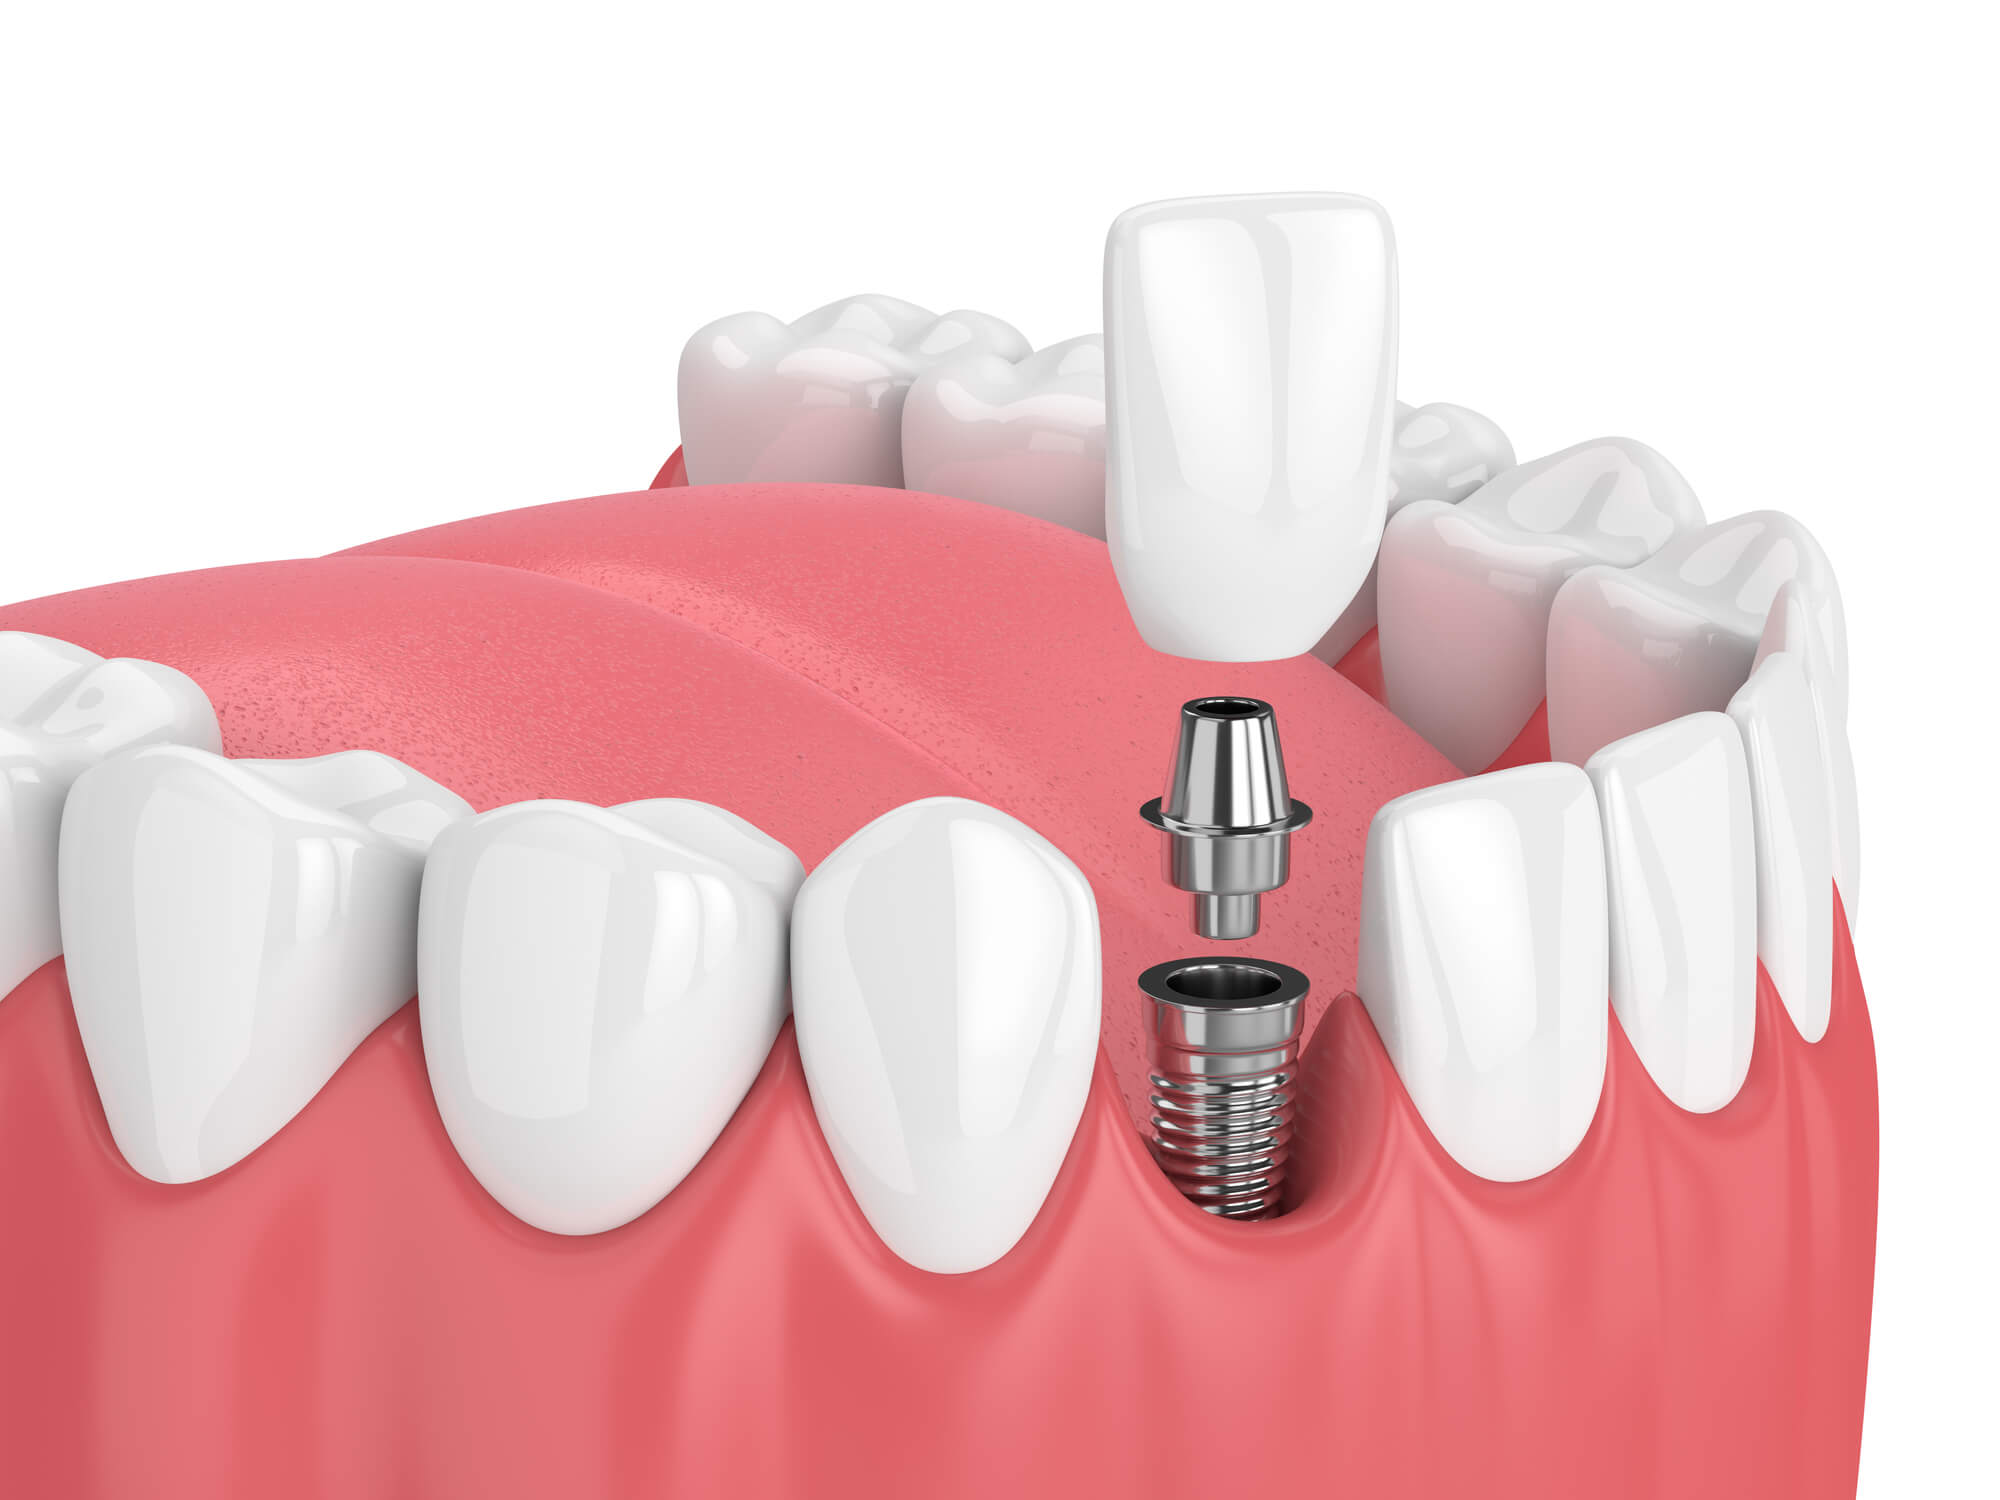 where can i get dental implants in fort pierce?